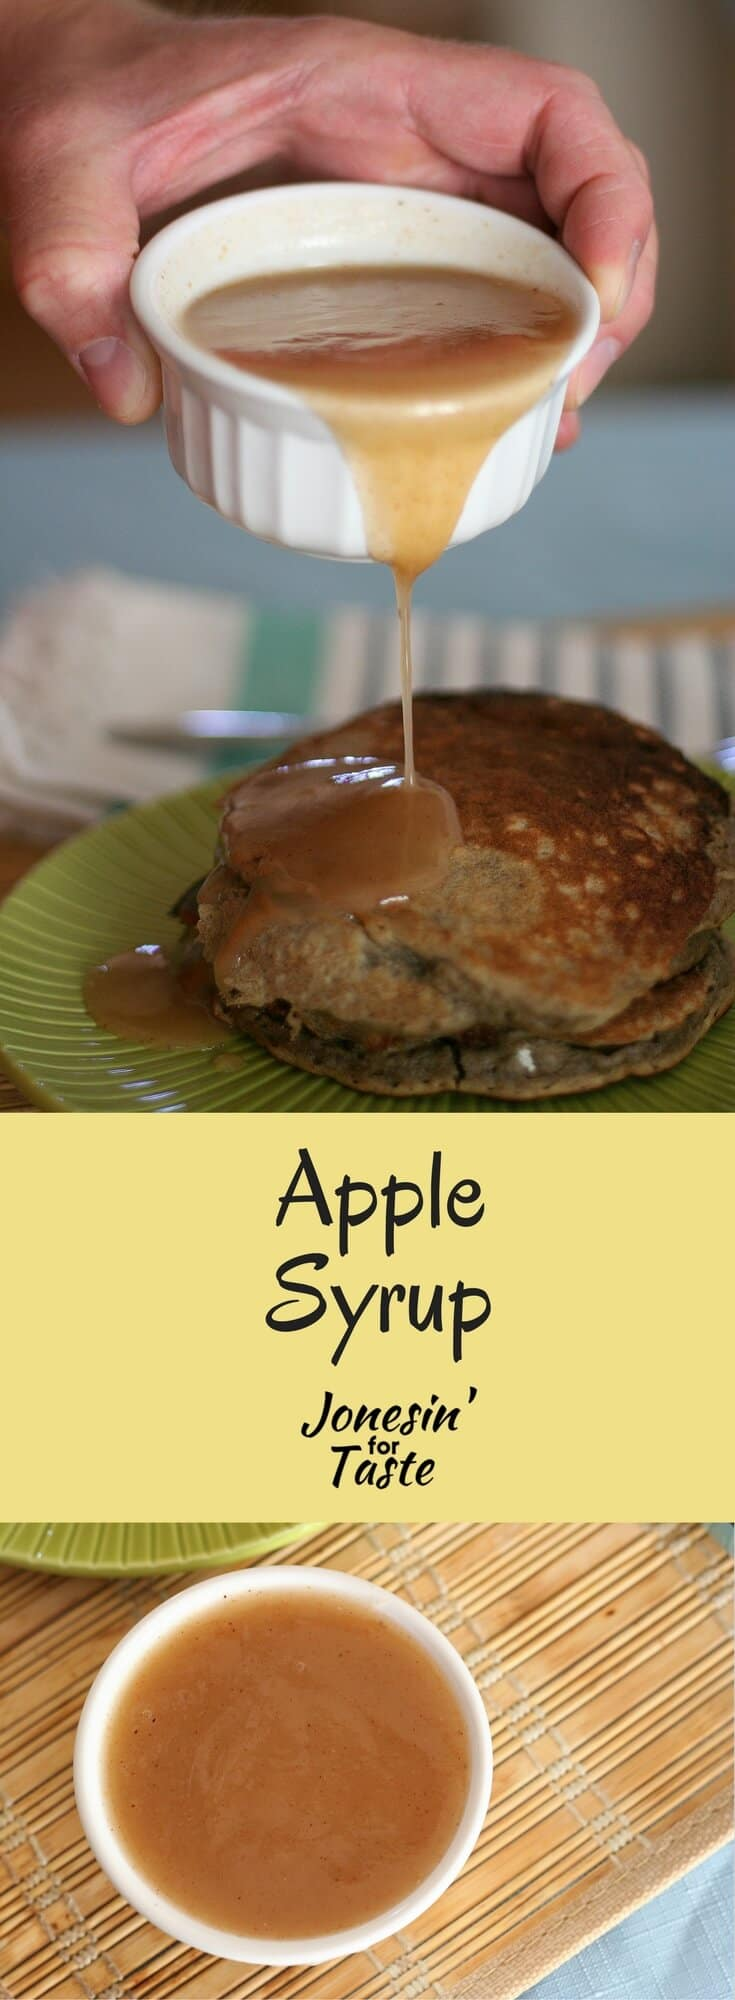 Apple syrup is a quick homemade syrup made with apple juice, Bisquik mix, and cinnamon that is delicious over pancakes.